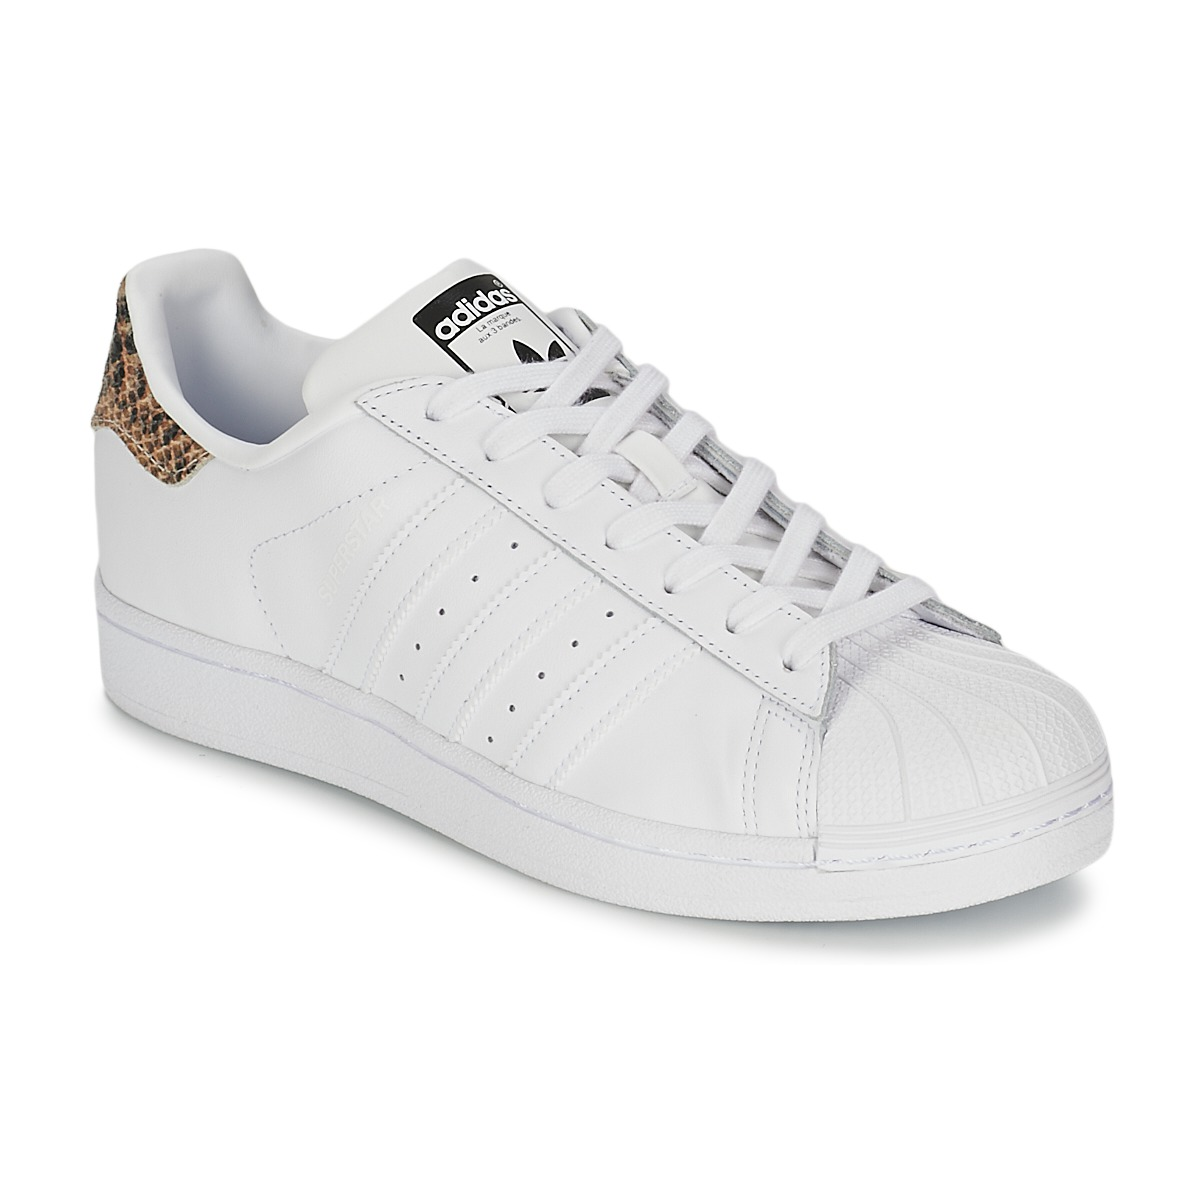 baskets basses adidas originals superstar w blanc baskets femme spartoo ventes pas. Black Bedroom Furniture Sets. Home Design Ideas